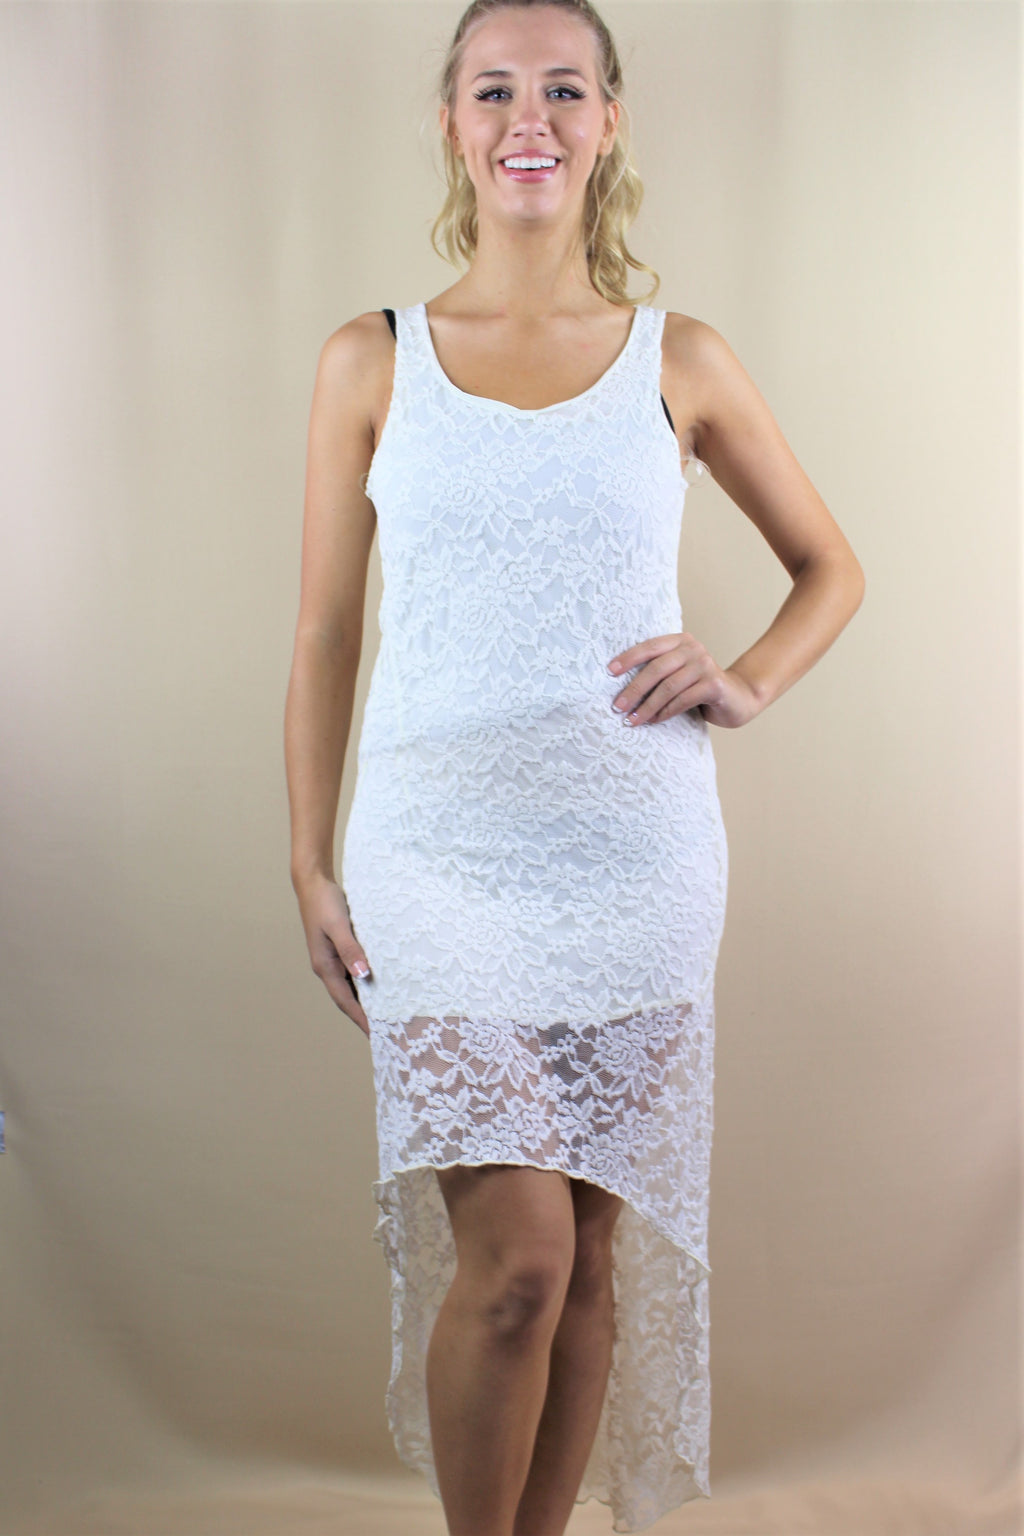 Women's Sleeveless Hi Low Lace Dress